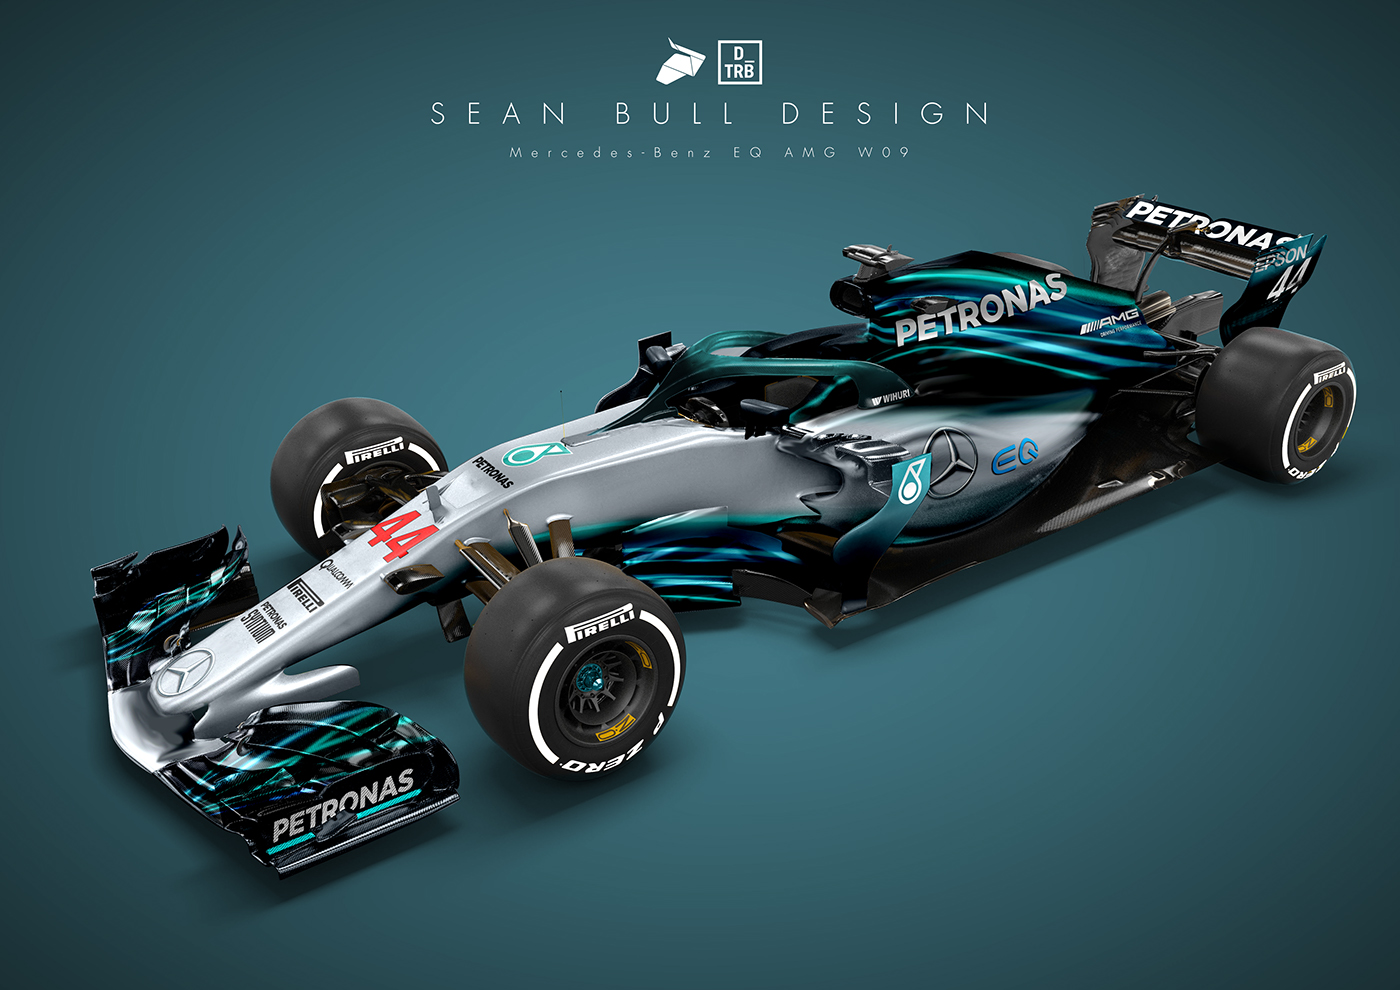 Mercedes Wo9 2018 Livery Concept Drivetribe On Behance